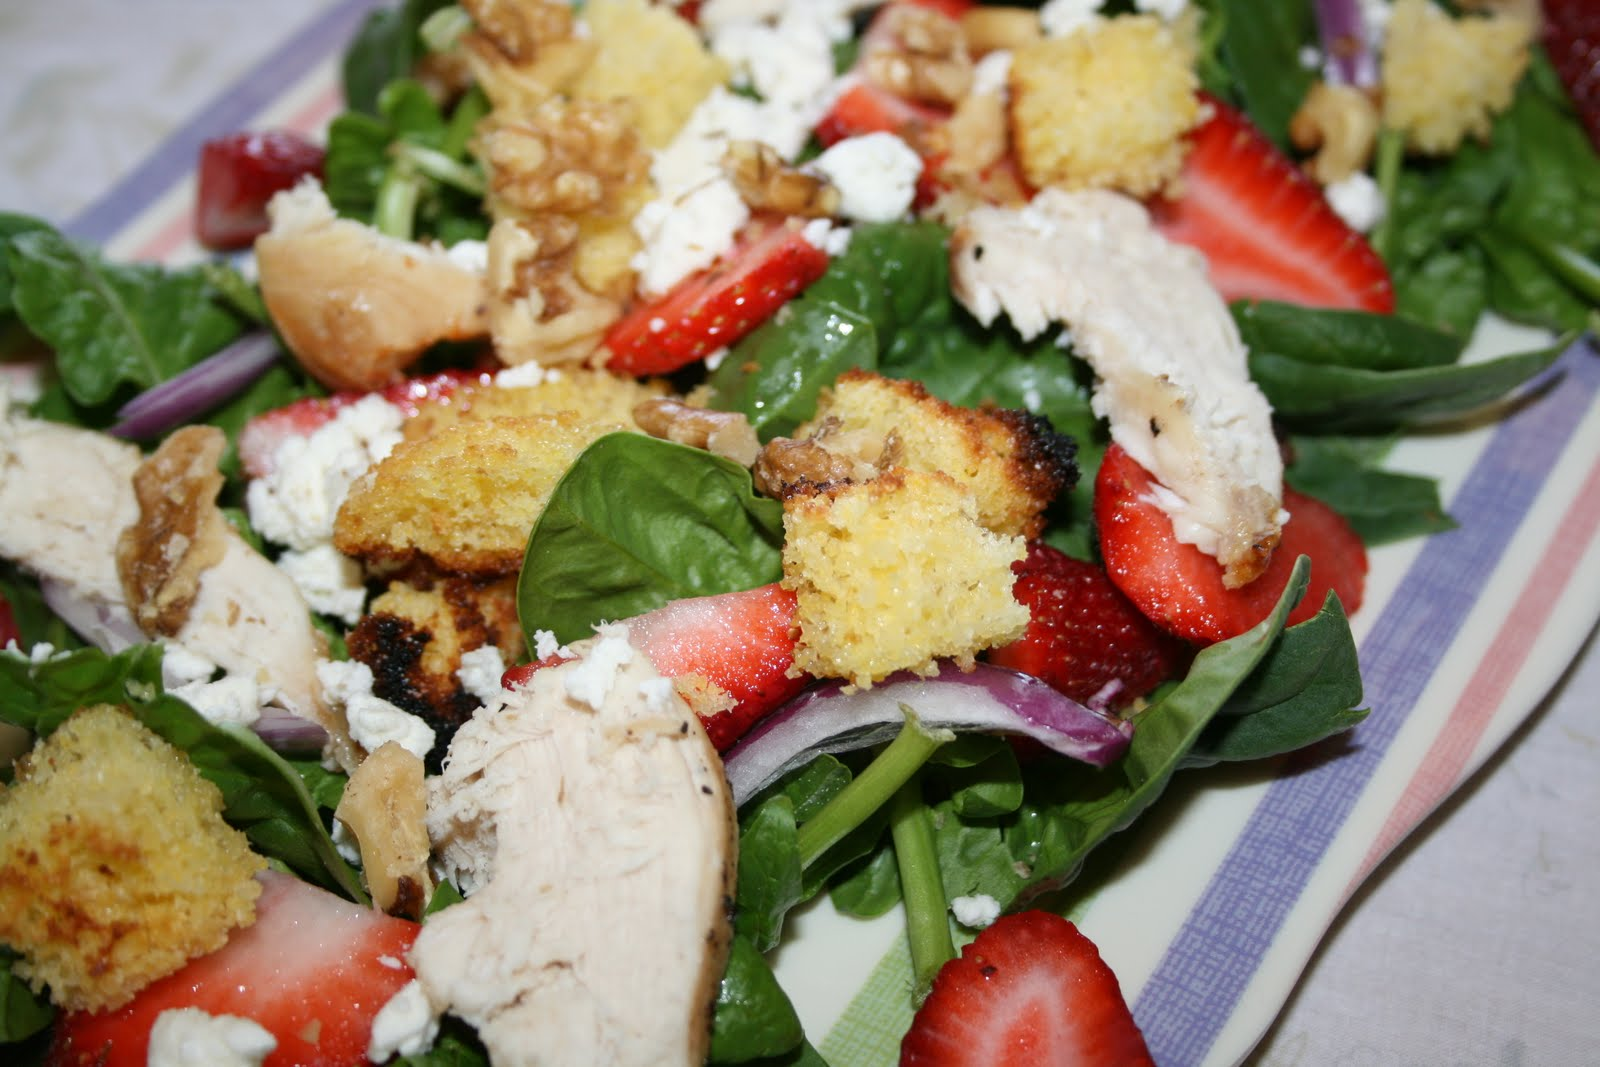 ... Pennywise: Mother's Day Chicken-Spinach Salad with Strawberry Dressing